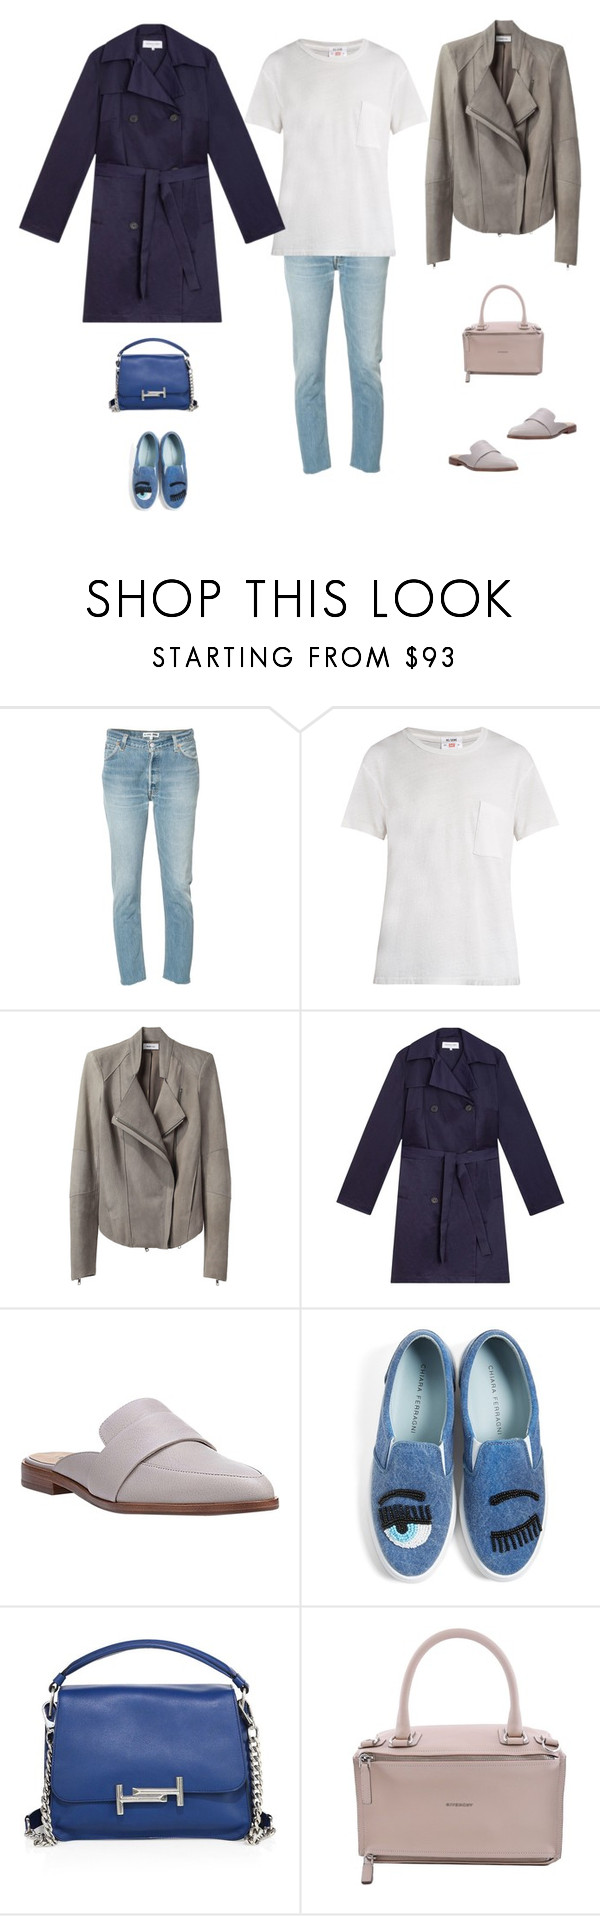 """""""Untitled #2686"""" by yuenchewwan ❤ liked on Polyvore featuring RE/DONE, Helmut Lang, Gérard Darel, Via Spiga, Chiara Ferragni, Tod's and Givenchy"""